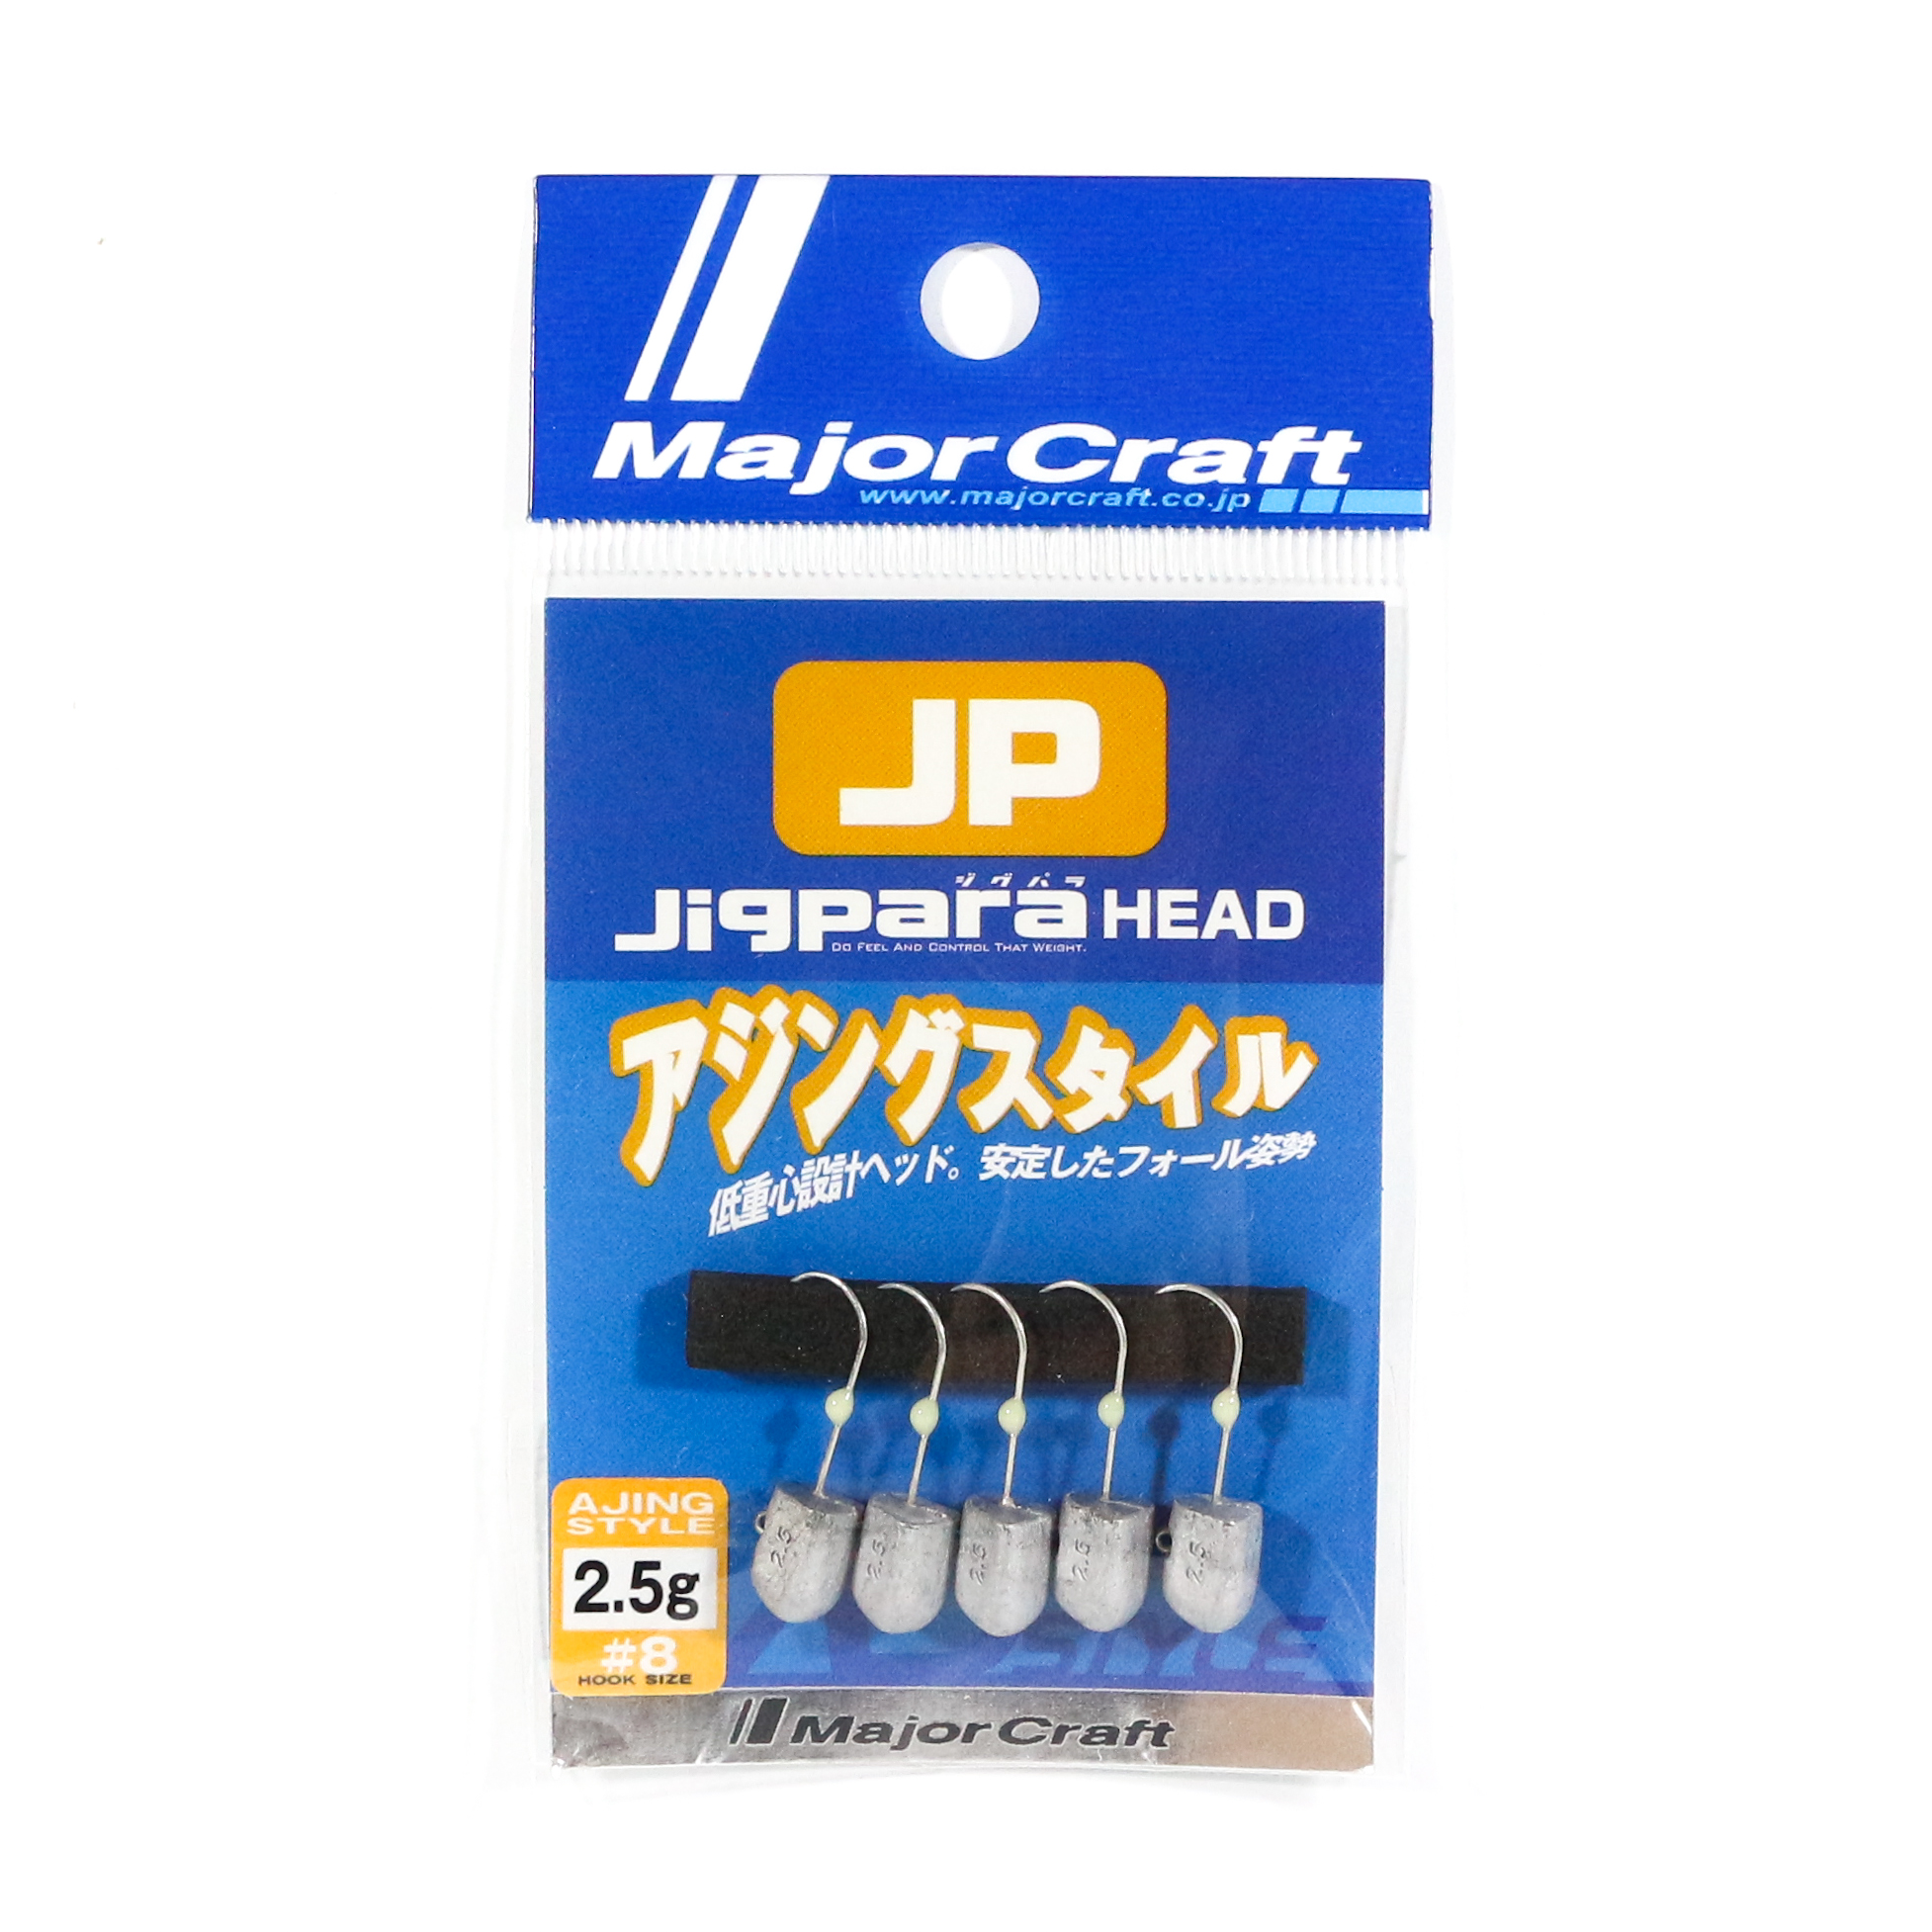 Major Craft Jig Head Aji JPHD-2.5 grams (2784)